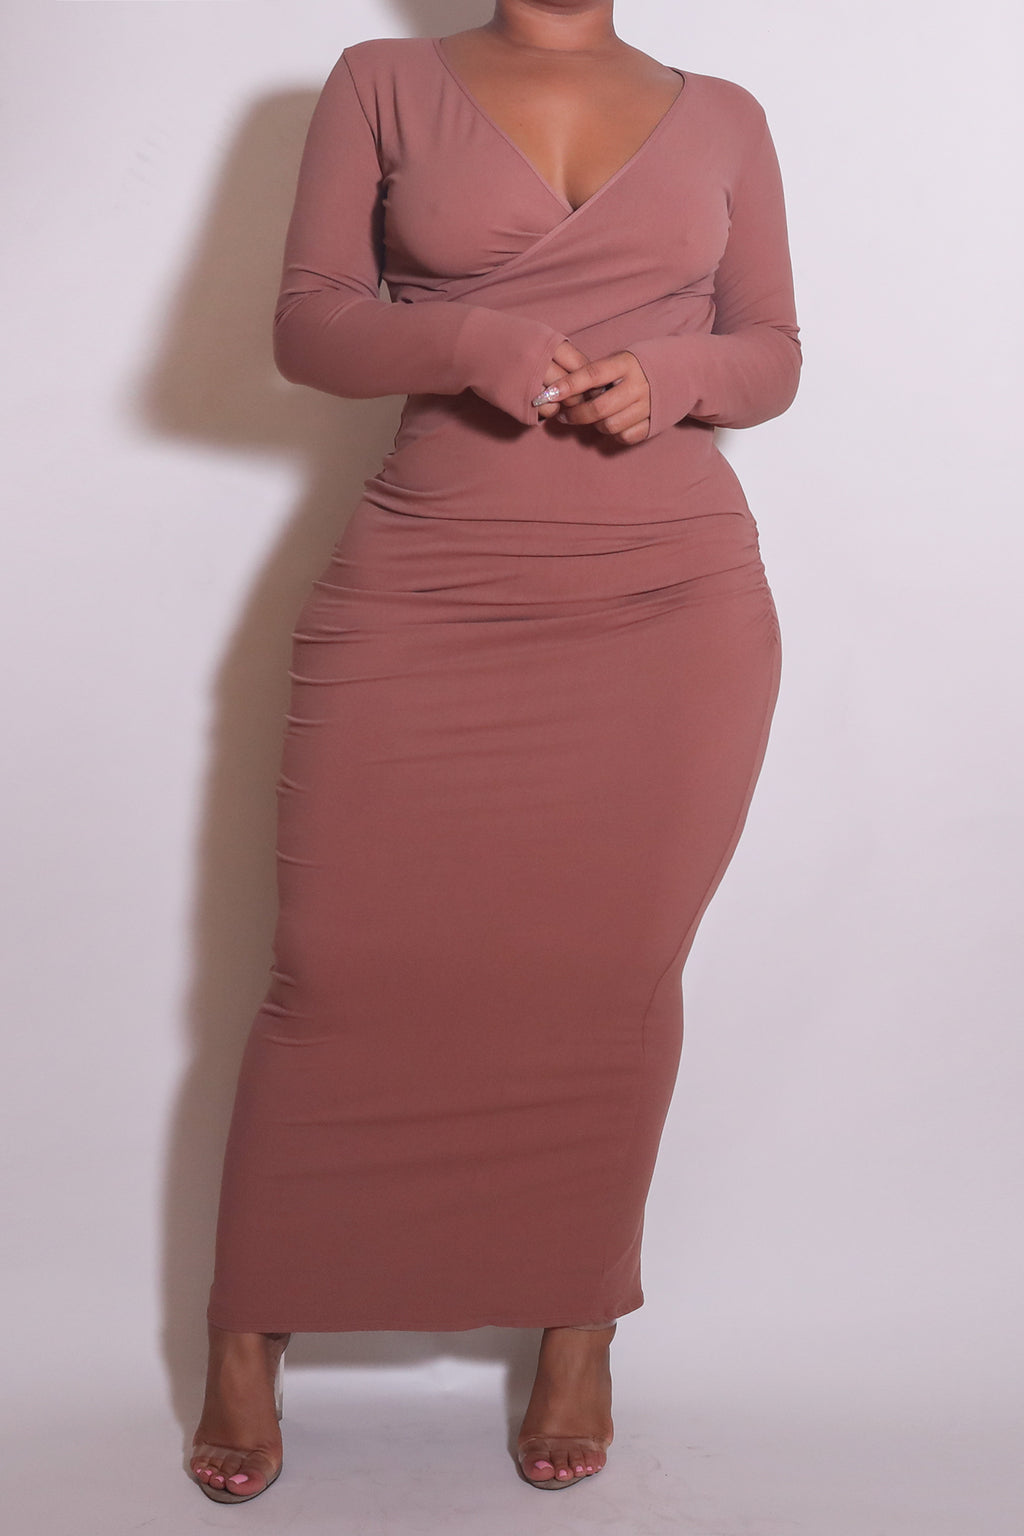 The Wrap Bodycon Maxi Dress in Blush - Babes And Felines | Specializing in Fashionable Staple Pieces for Every Shape and Size (1449226928200)